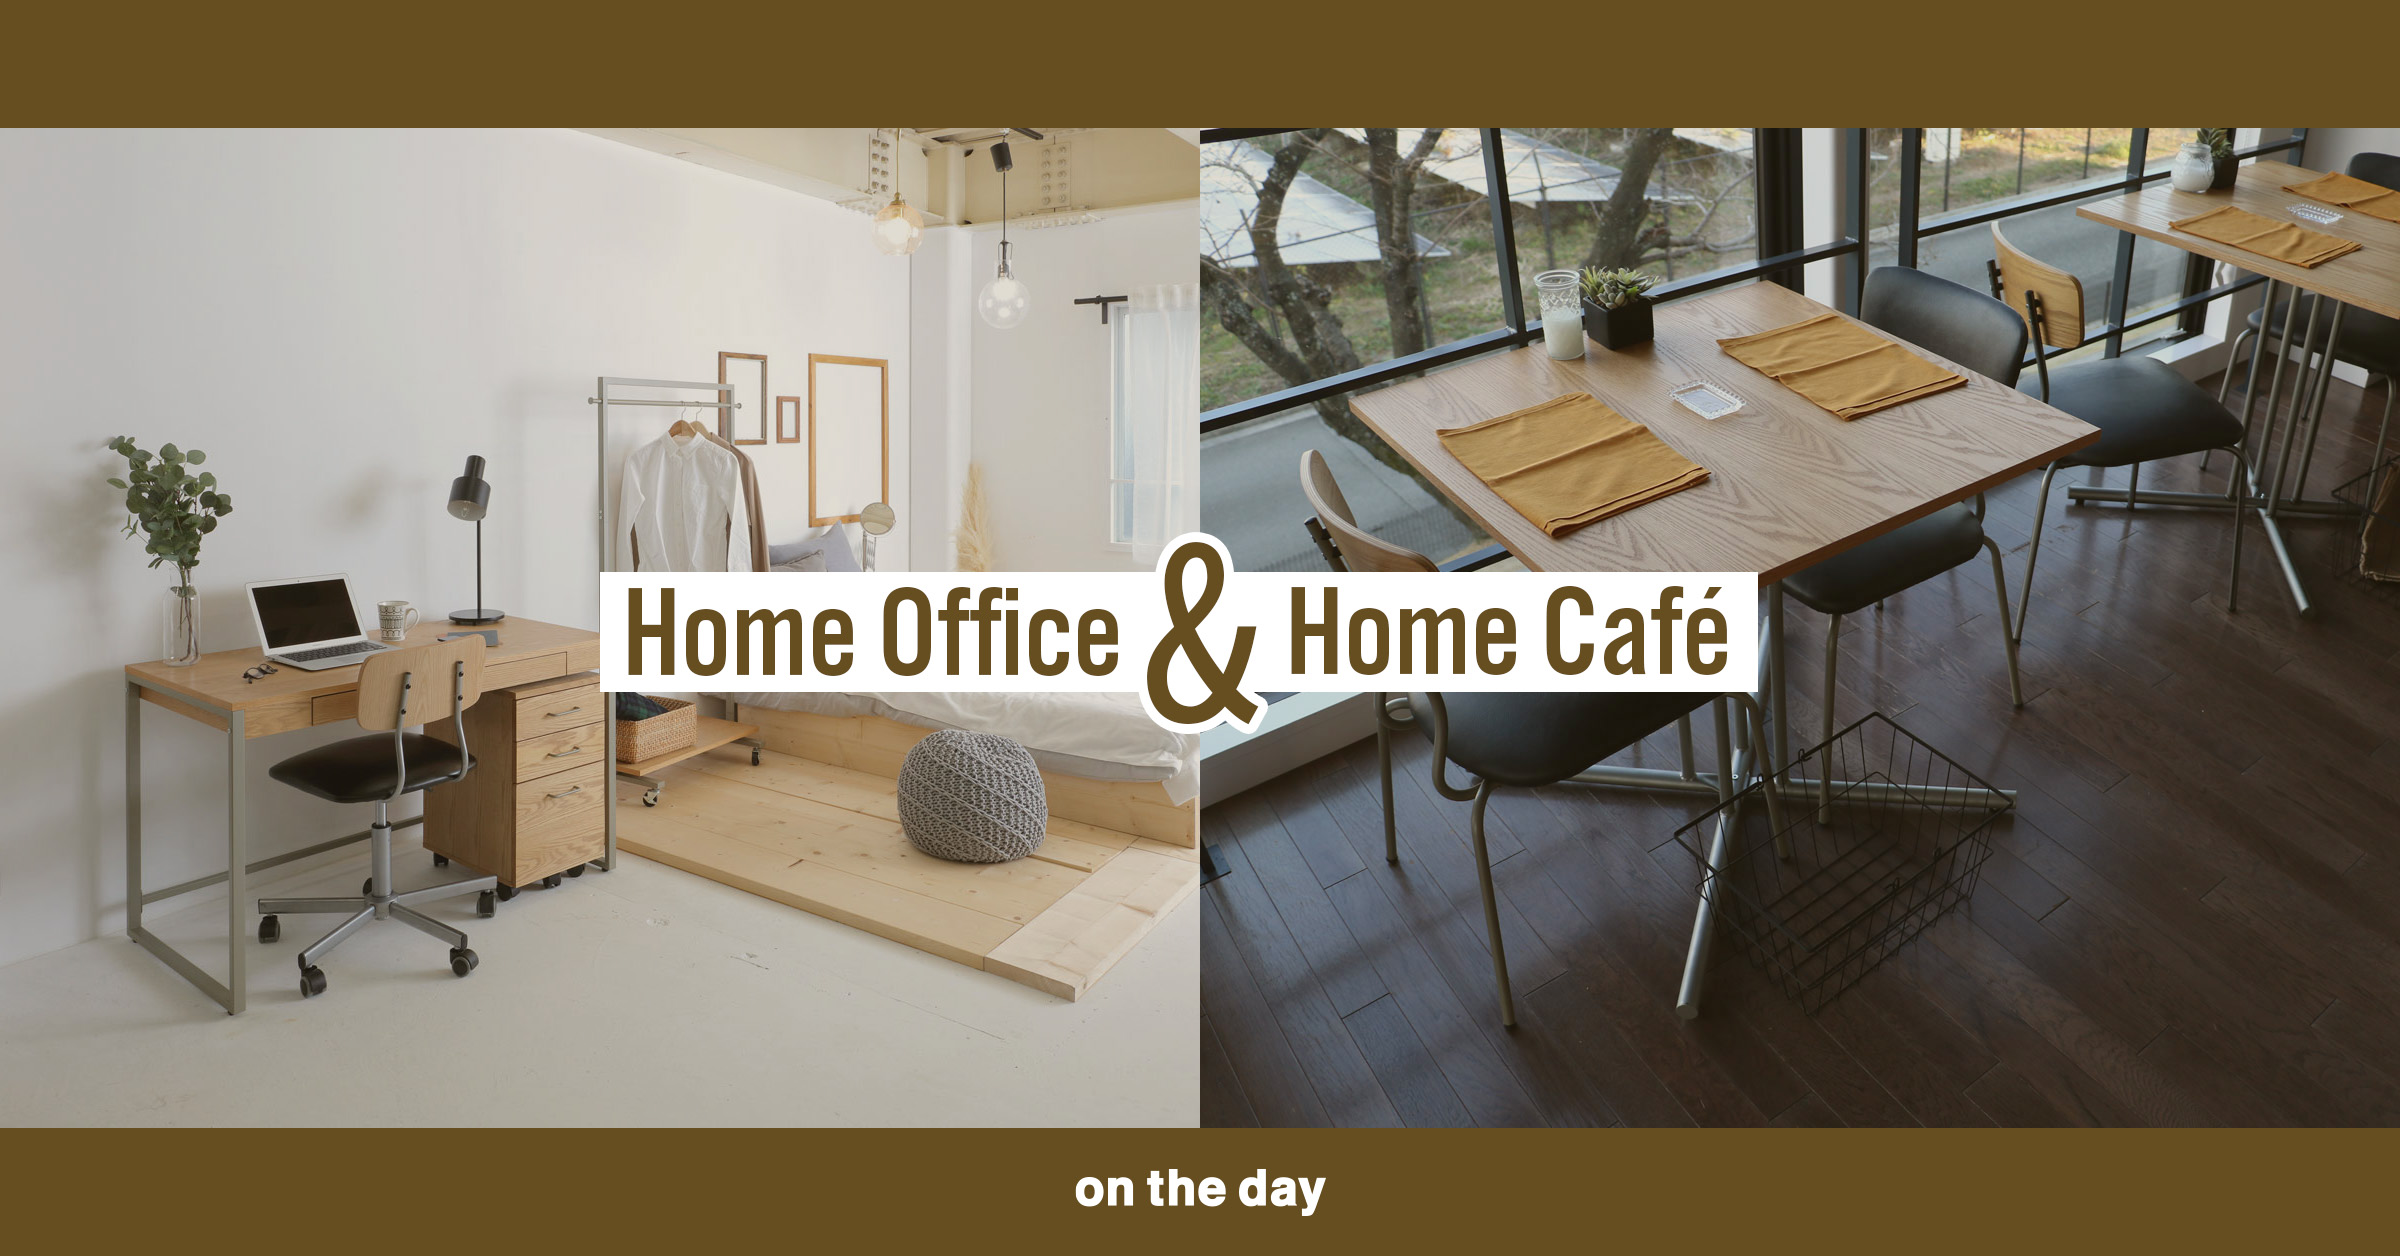 Home Office Home Cafe